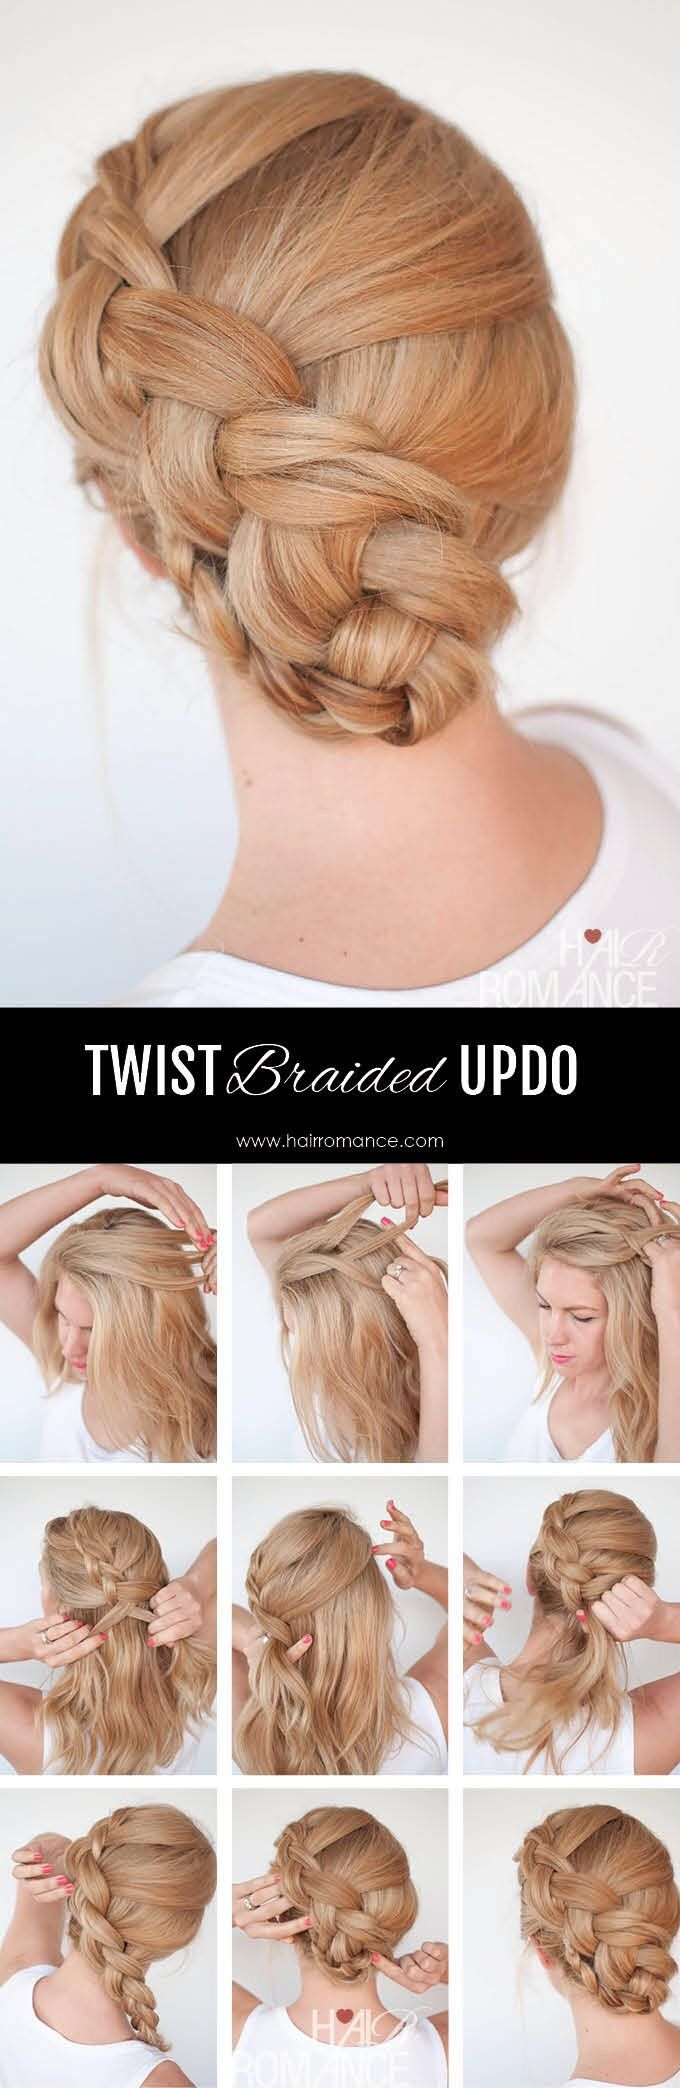 Twisted Dutch braid from HairRomance